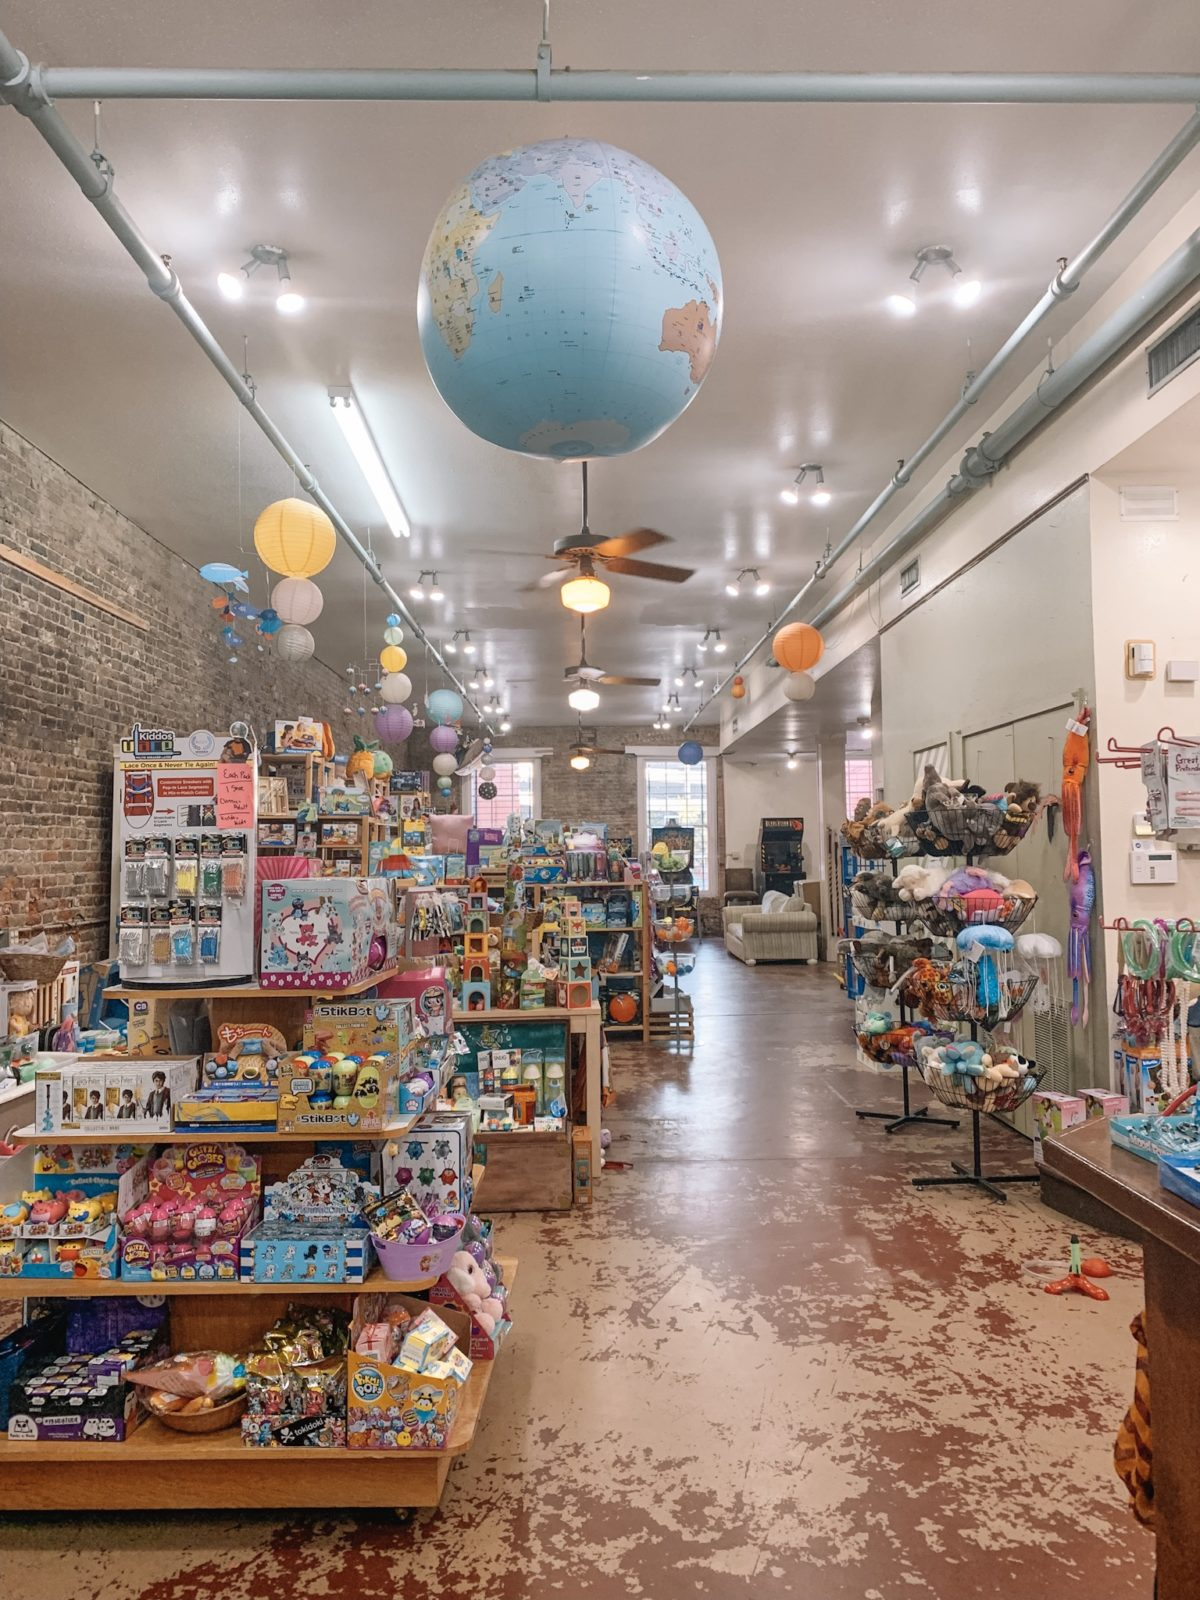 48 Hours in Galveston - Kids store